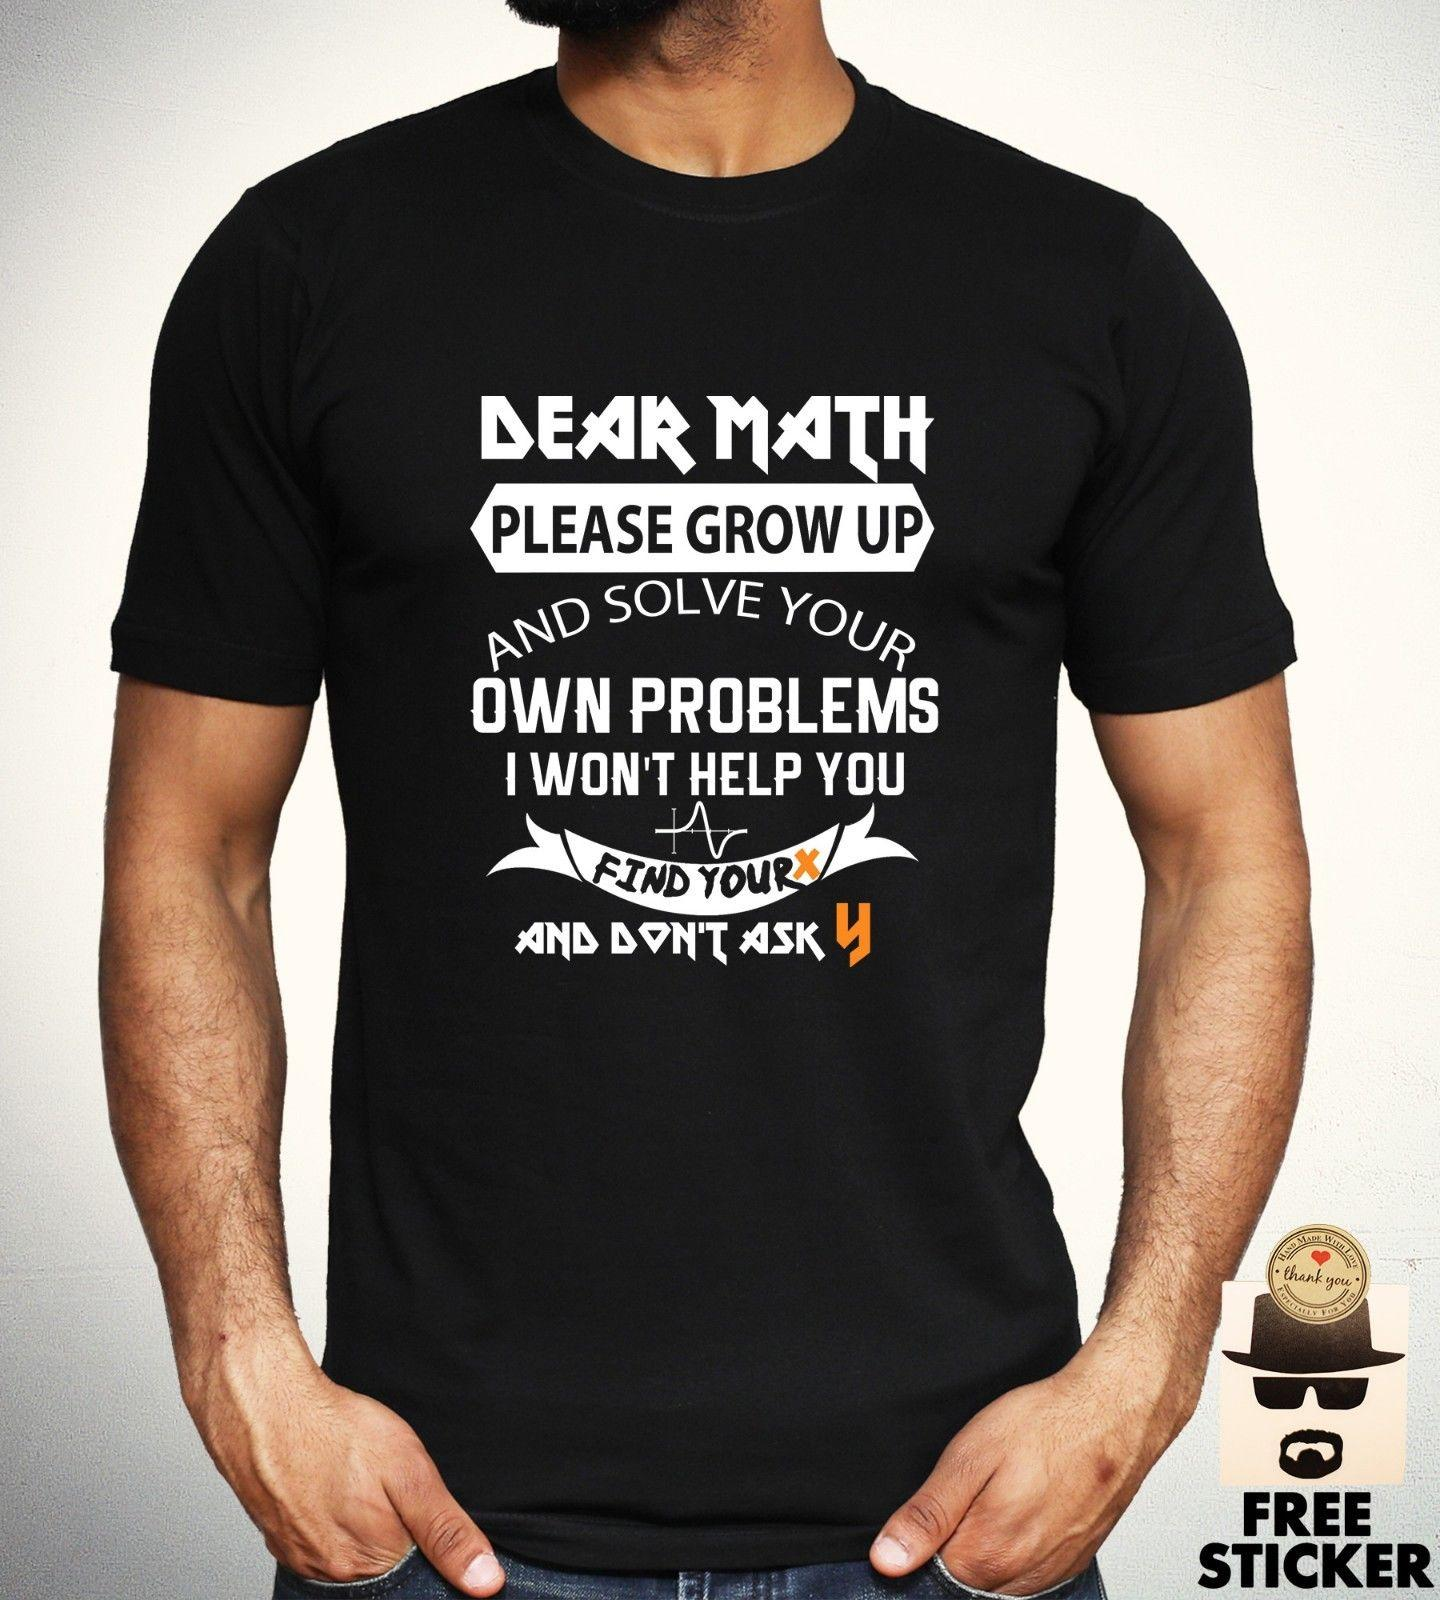 082181281 Funny Math Problem T Shirt School College University XY Geeky Joke Gift Top  Mens Funny T Shirts Online Hilarious T Shirts From Oldshop77, $11.48|  DHgate.Com